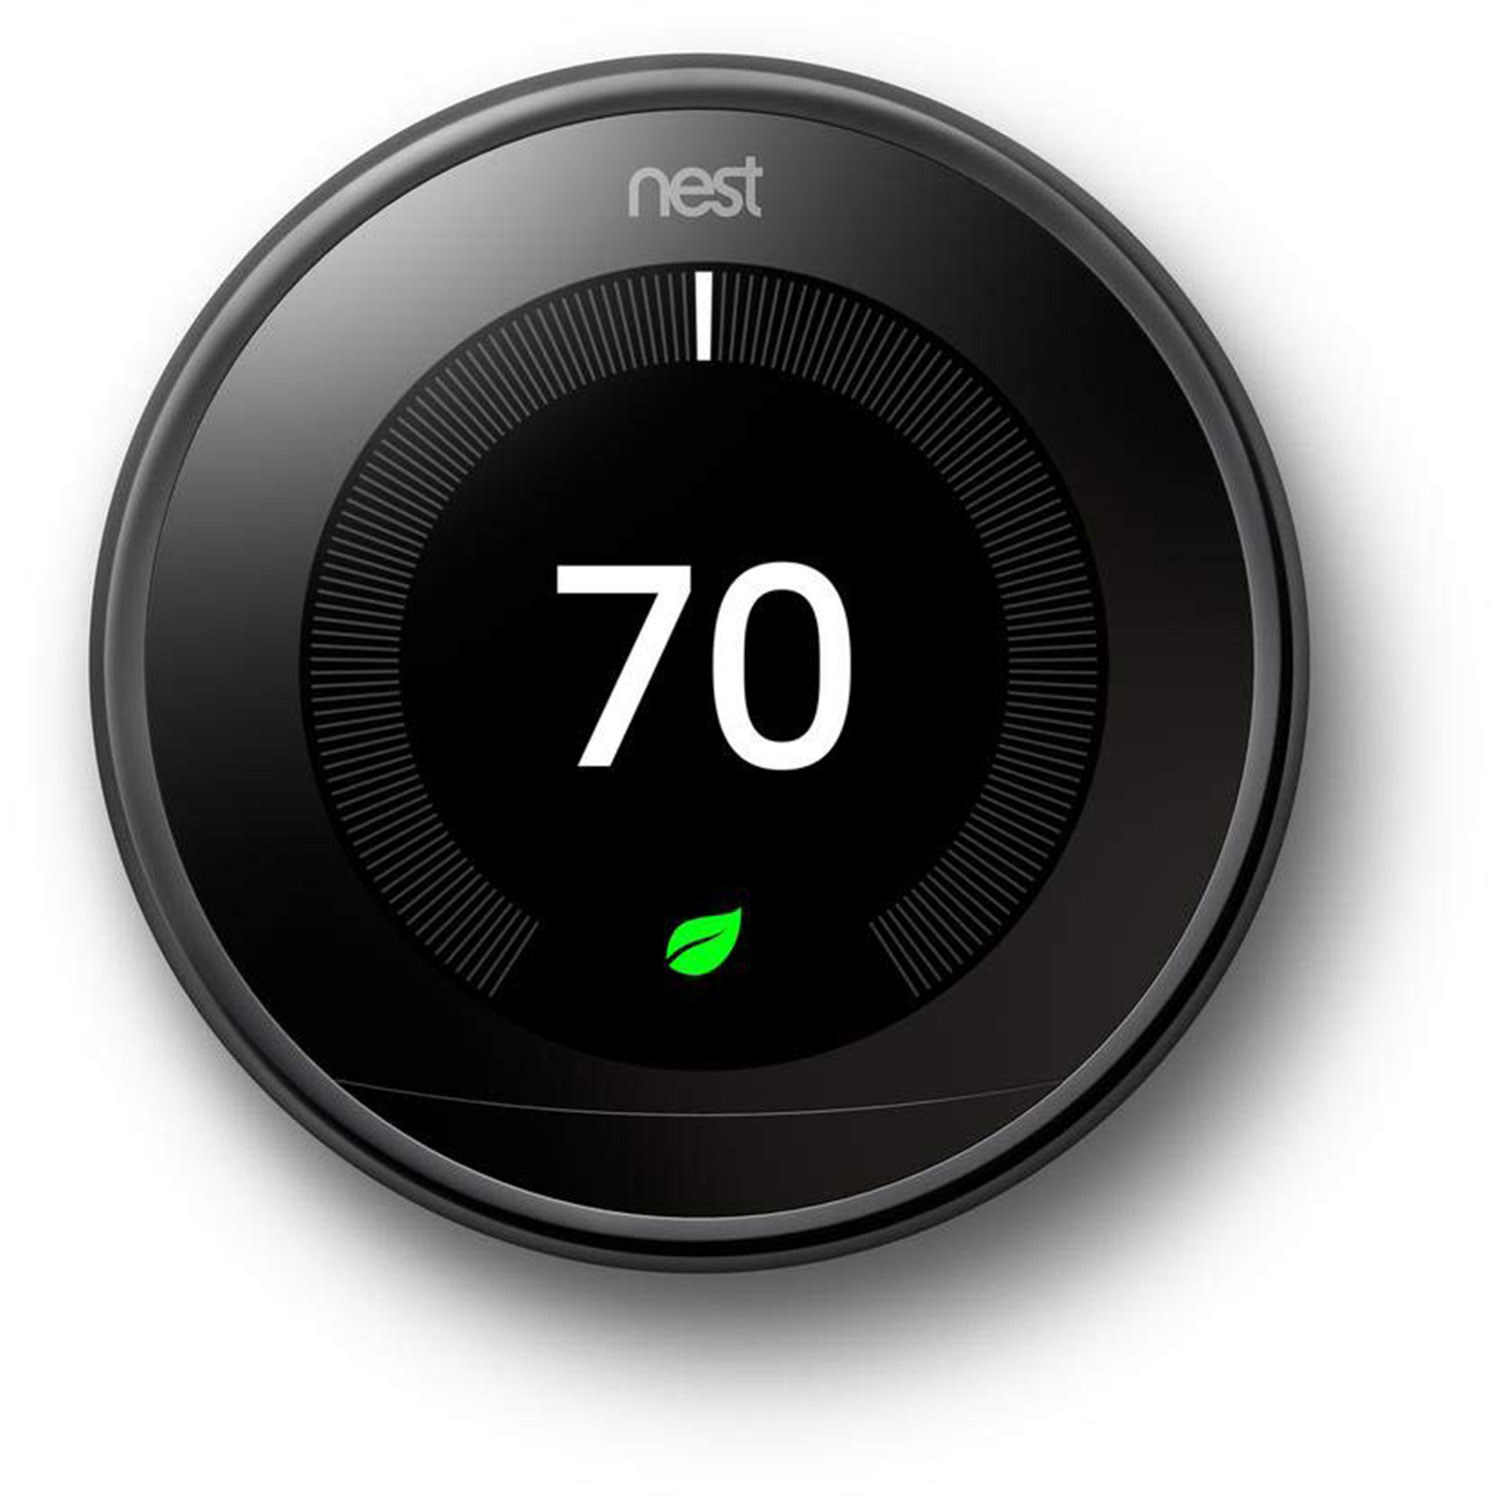 A round digital screen Nest thermostat set at 70 degrees